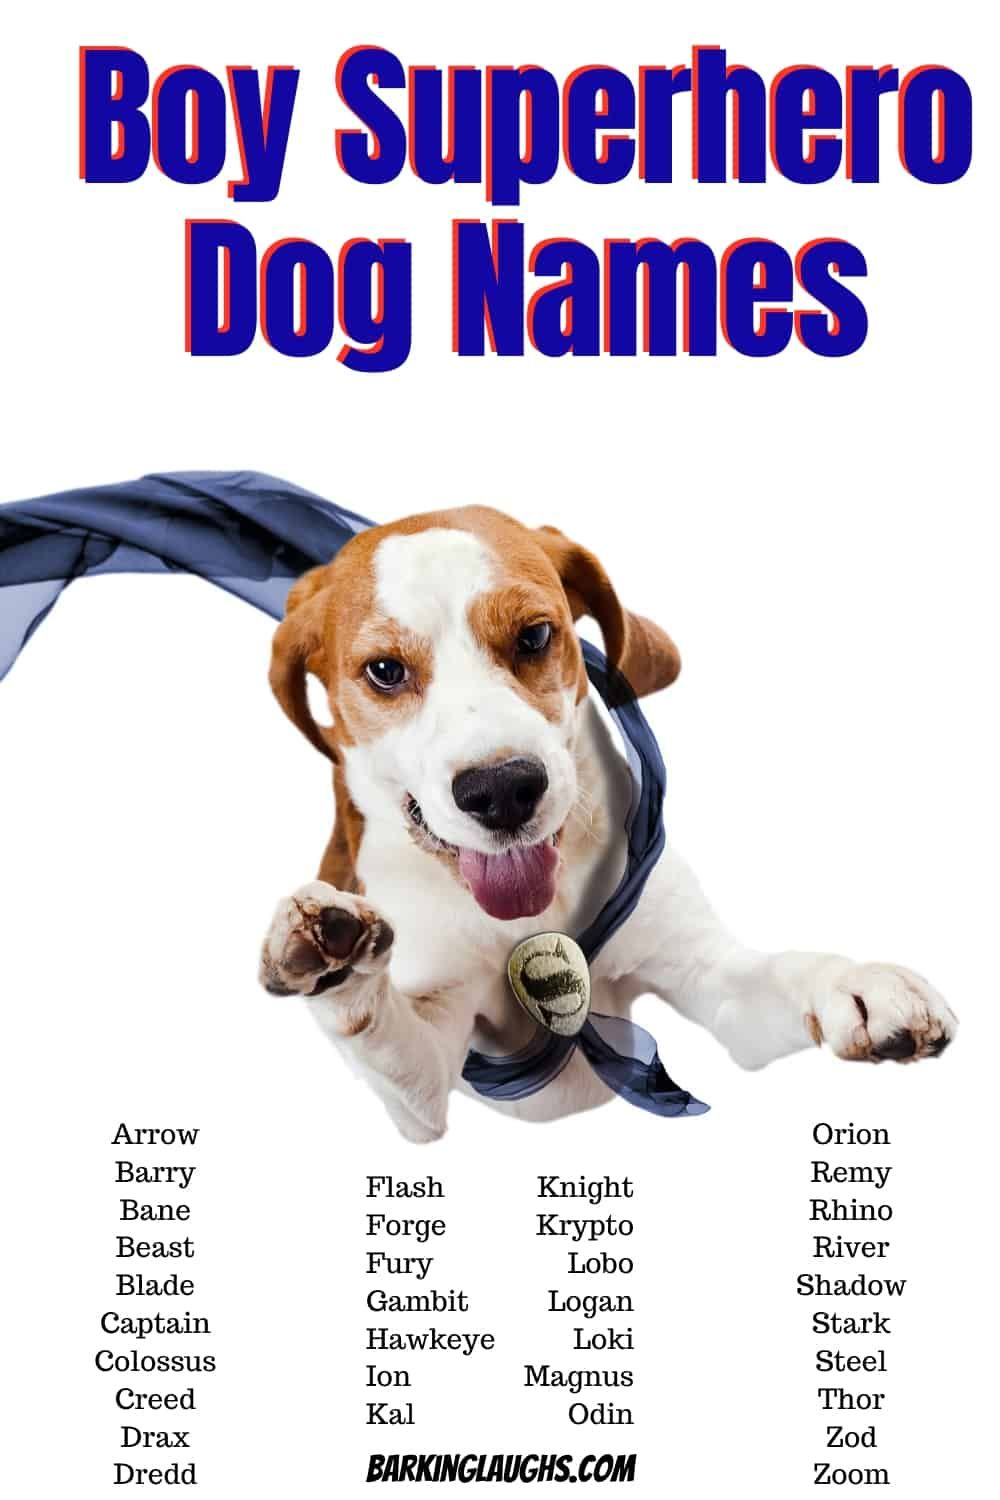 The Best Boy Dog Names List With Meanings In 2020 Boy Dog Names Good Boy Dog Names Dogs Names List